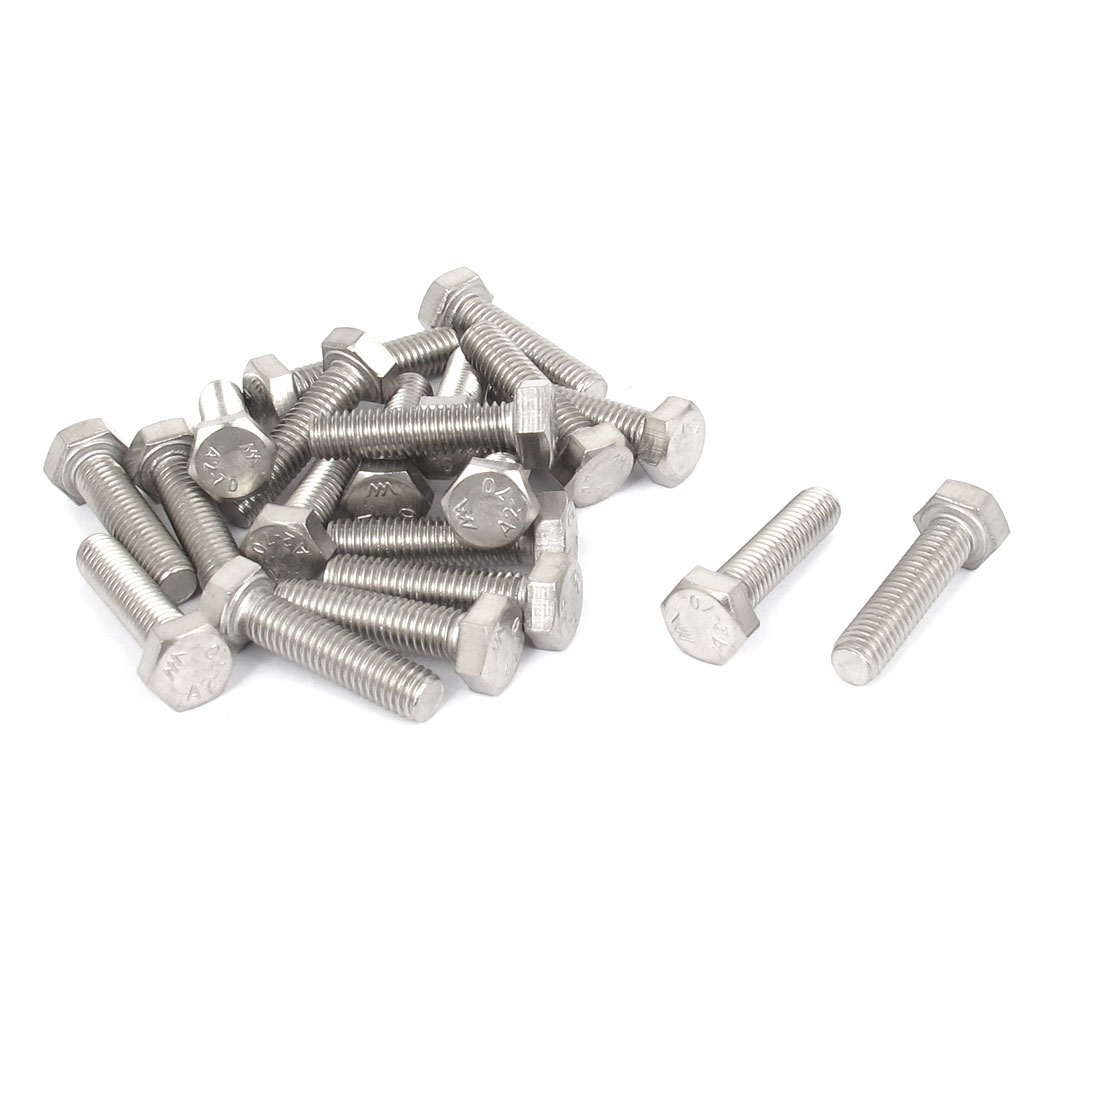 M5x20mm Thread 304 Stainless Steel Hex Hexagon Head Screw Bolt 20pcs